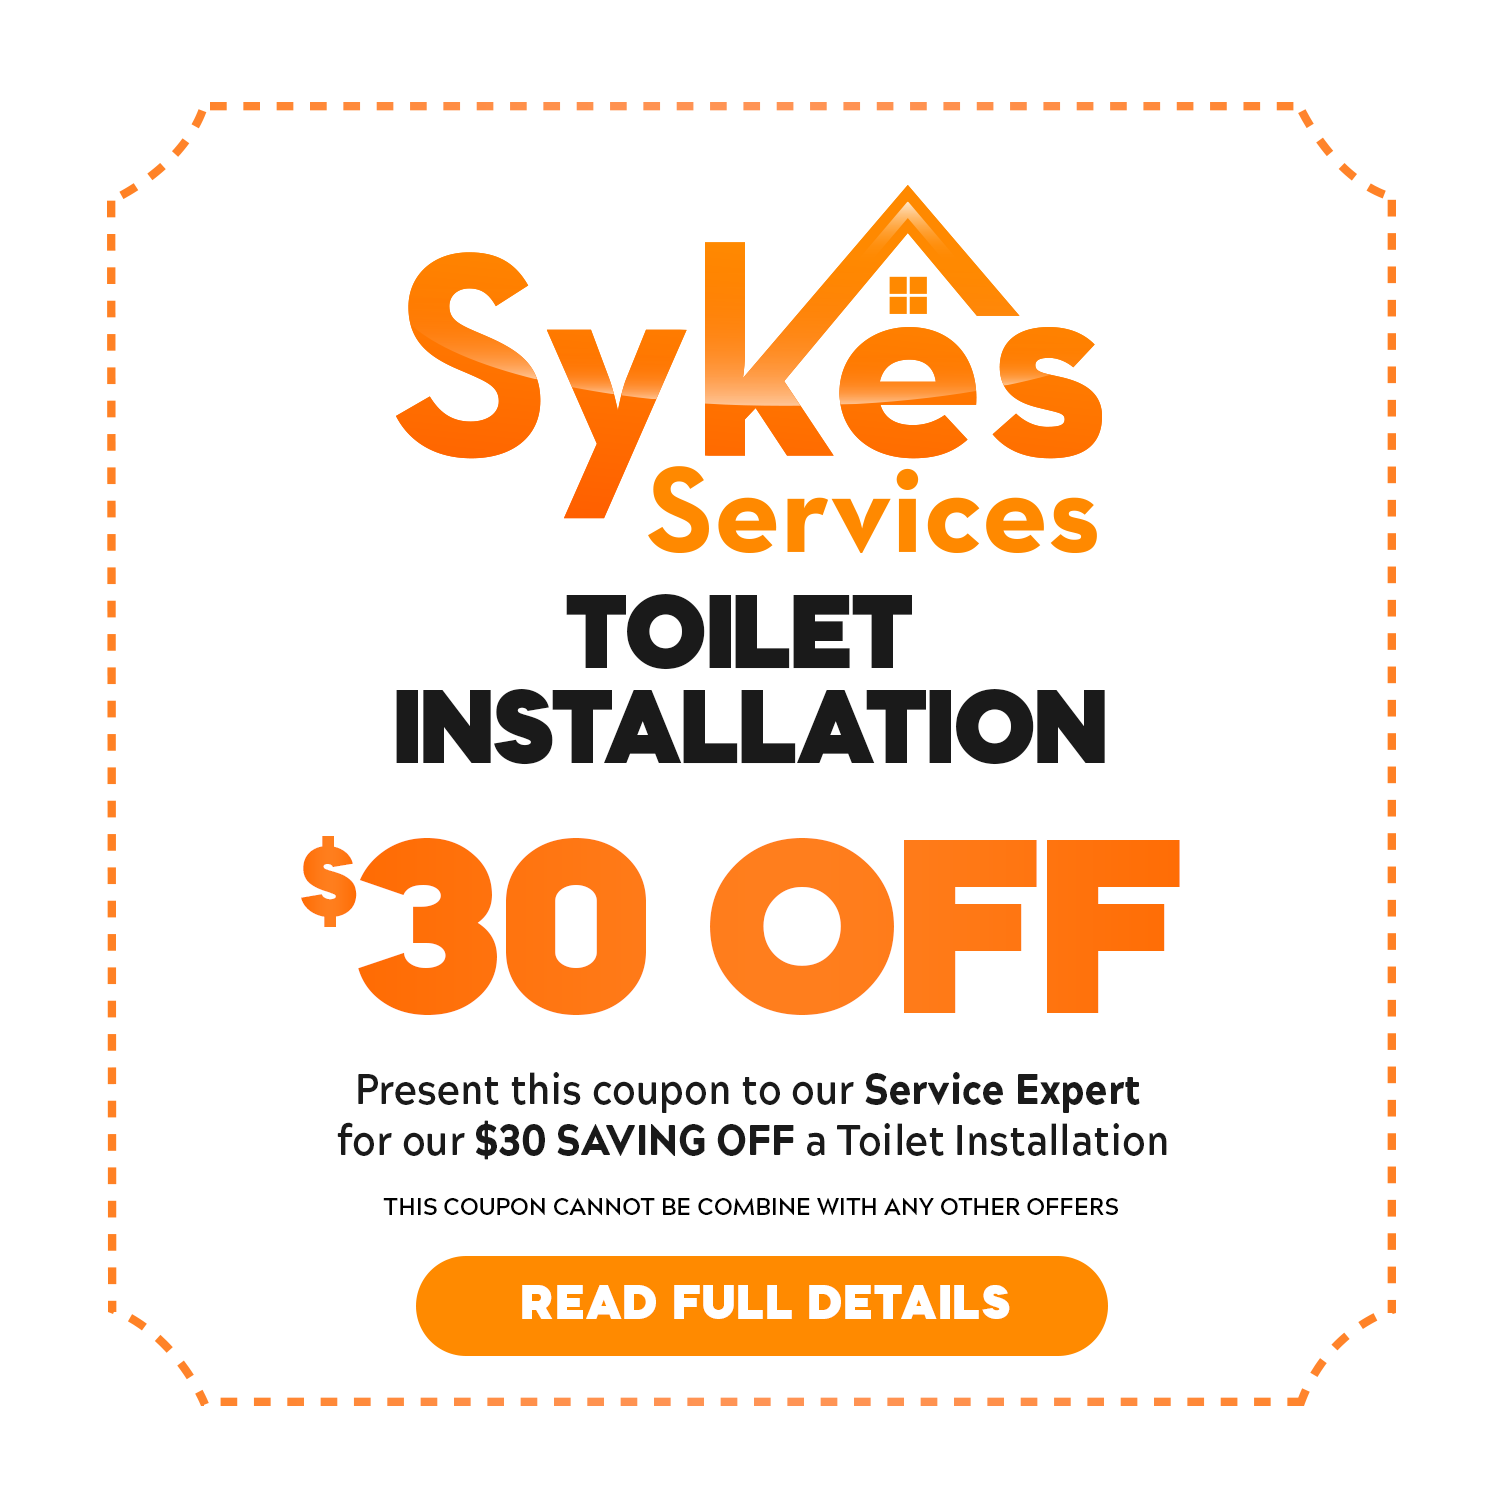 Plumbing Services Waldorf MD Reverse Toilet Installation Coupon Special